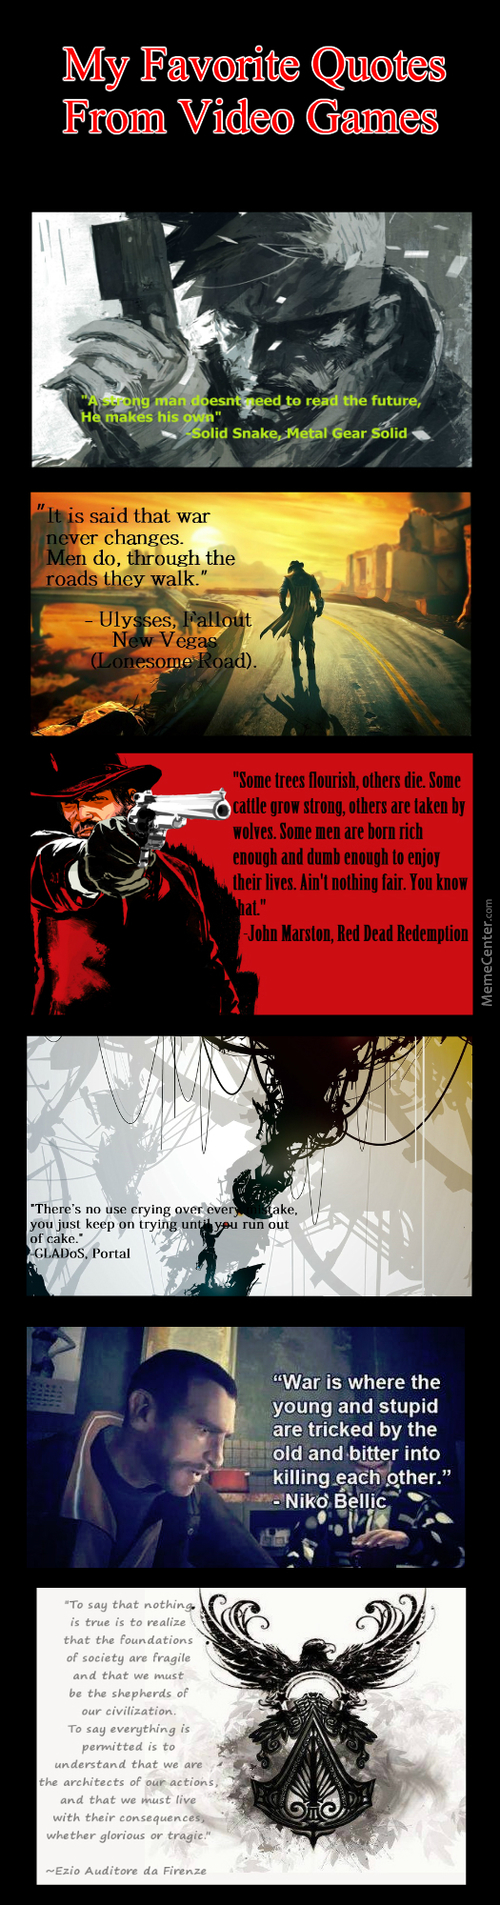 My Favorite Quotes From Video Games